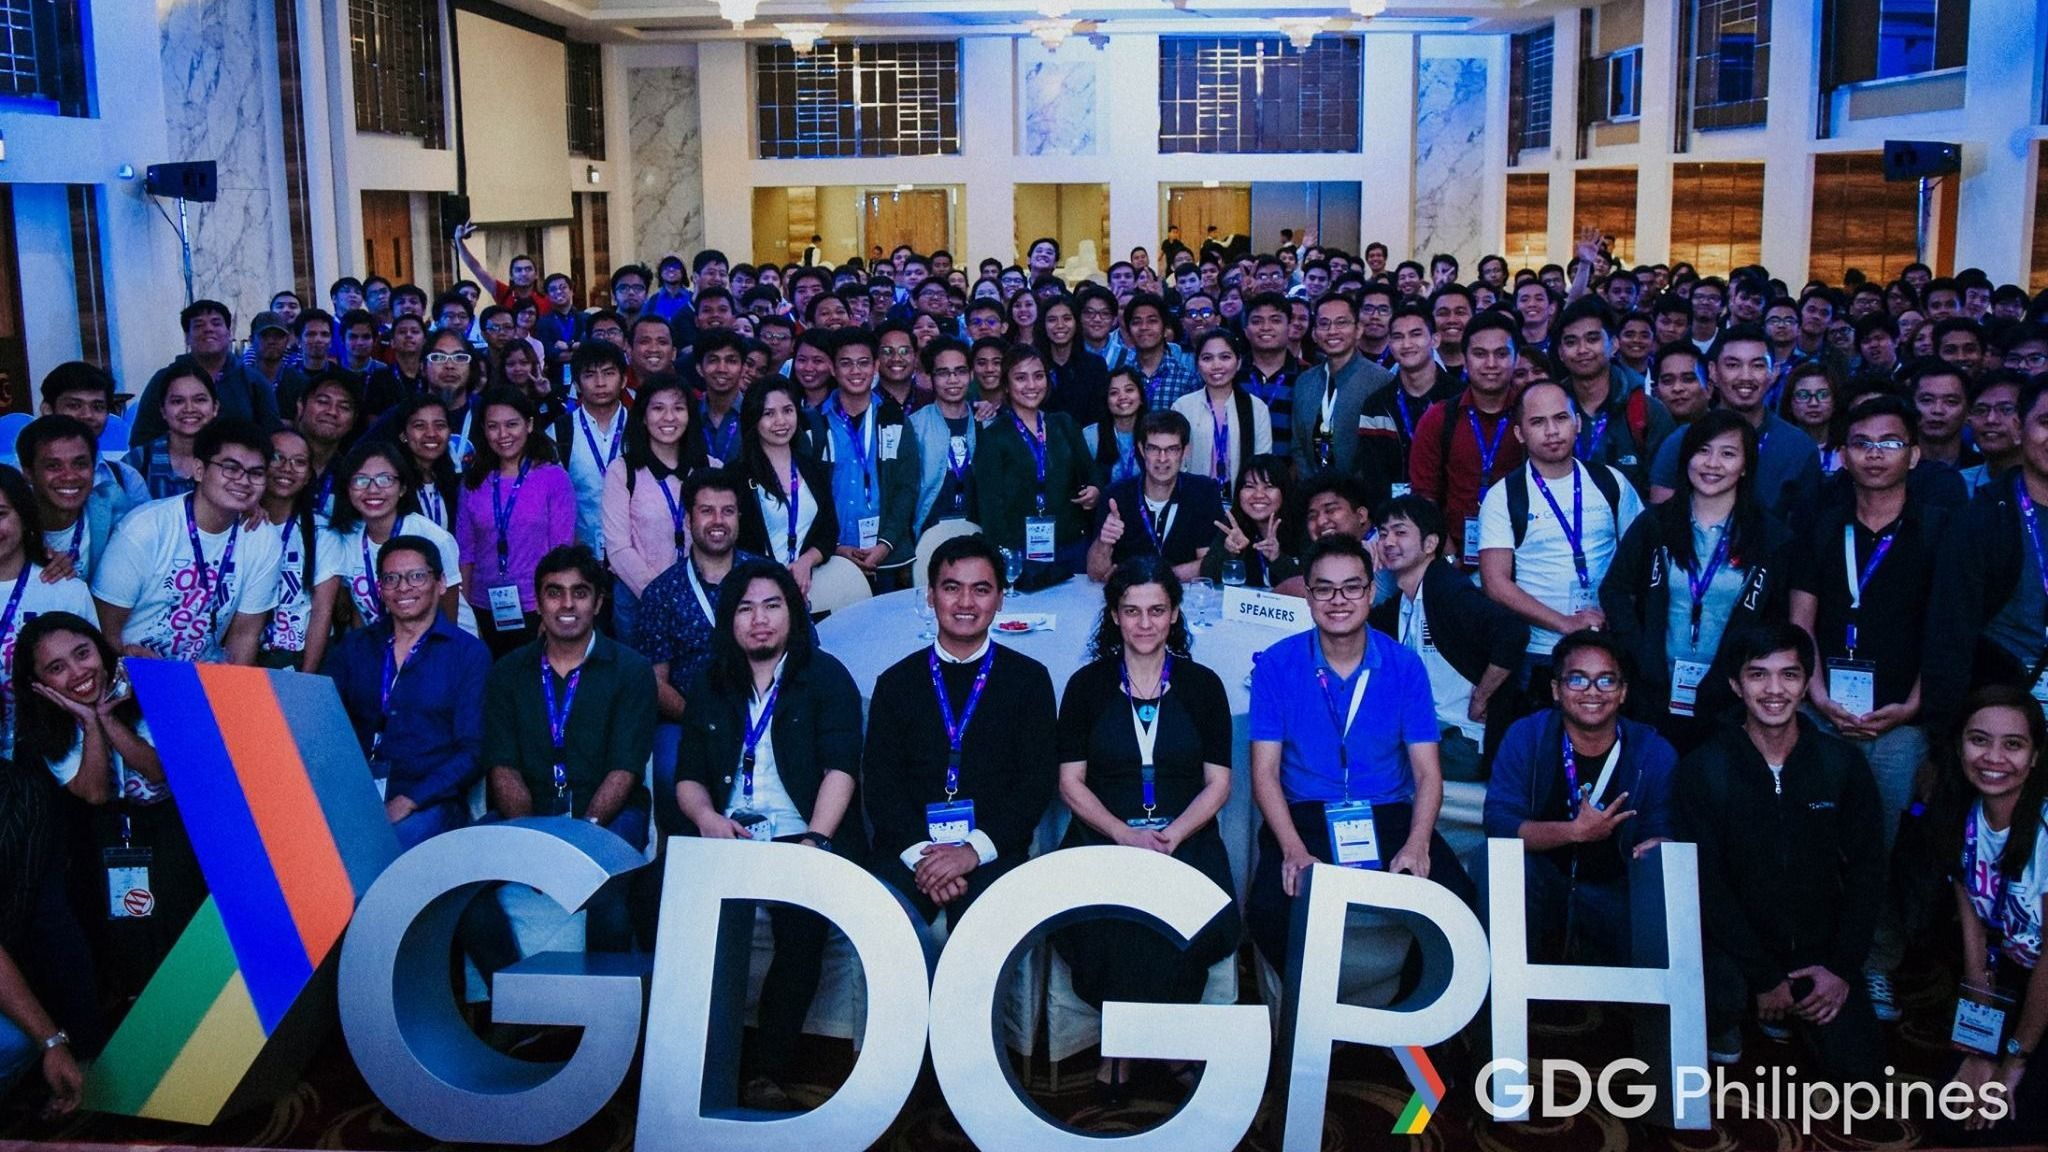 Google Developer Group (GDG) Philippines